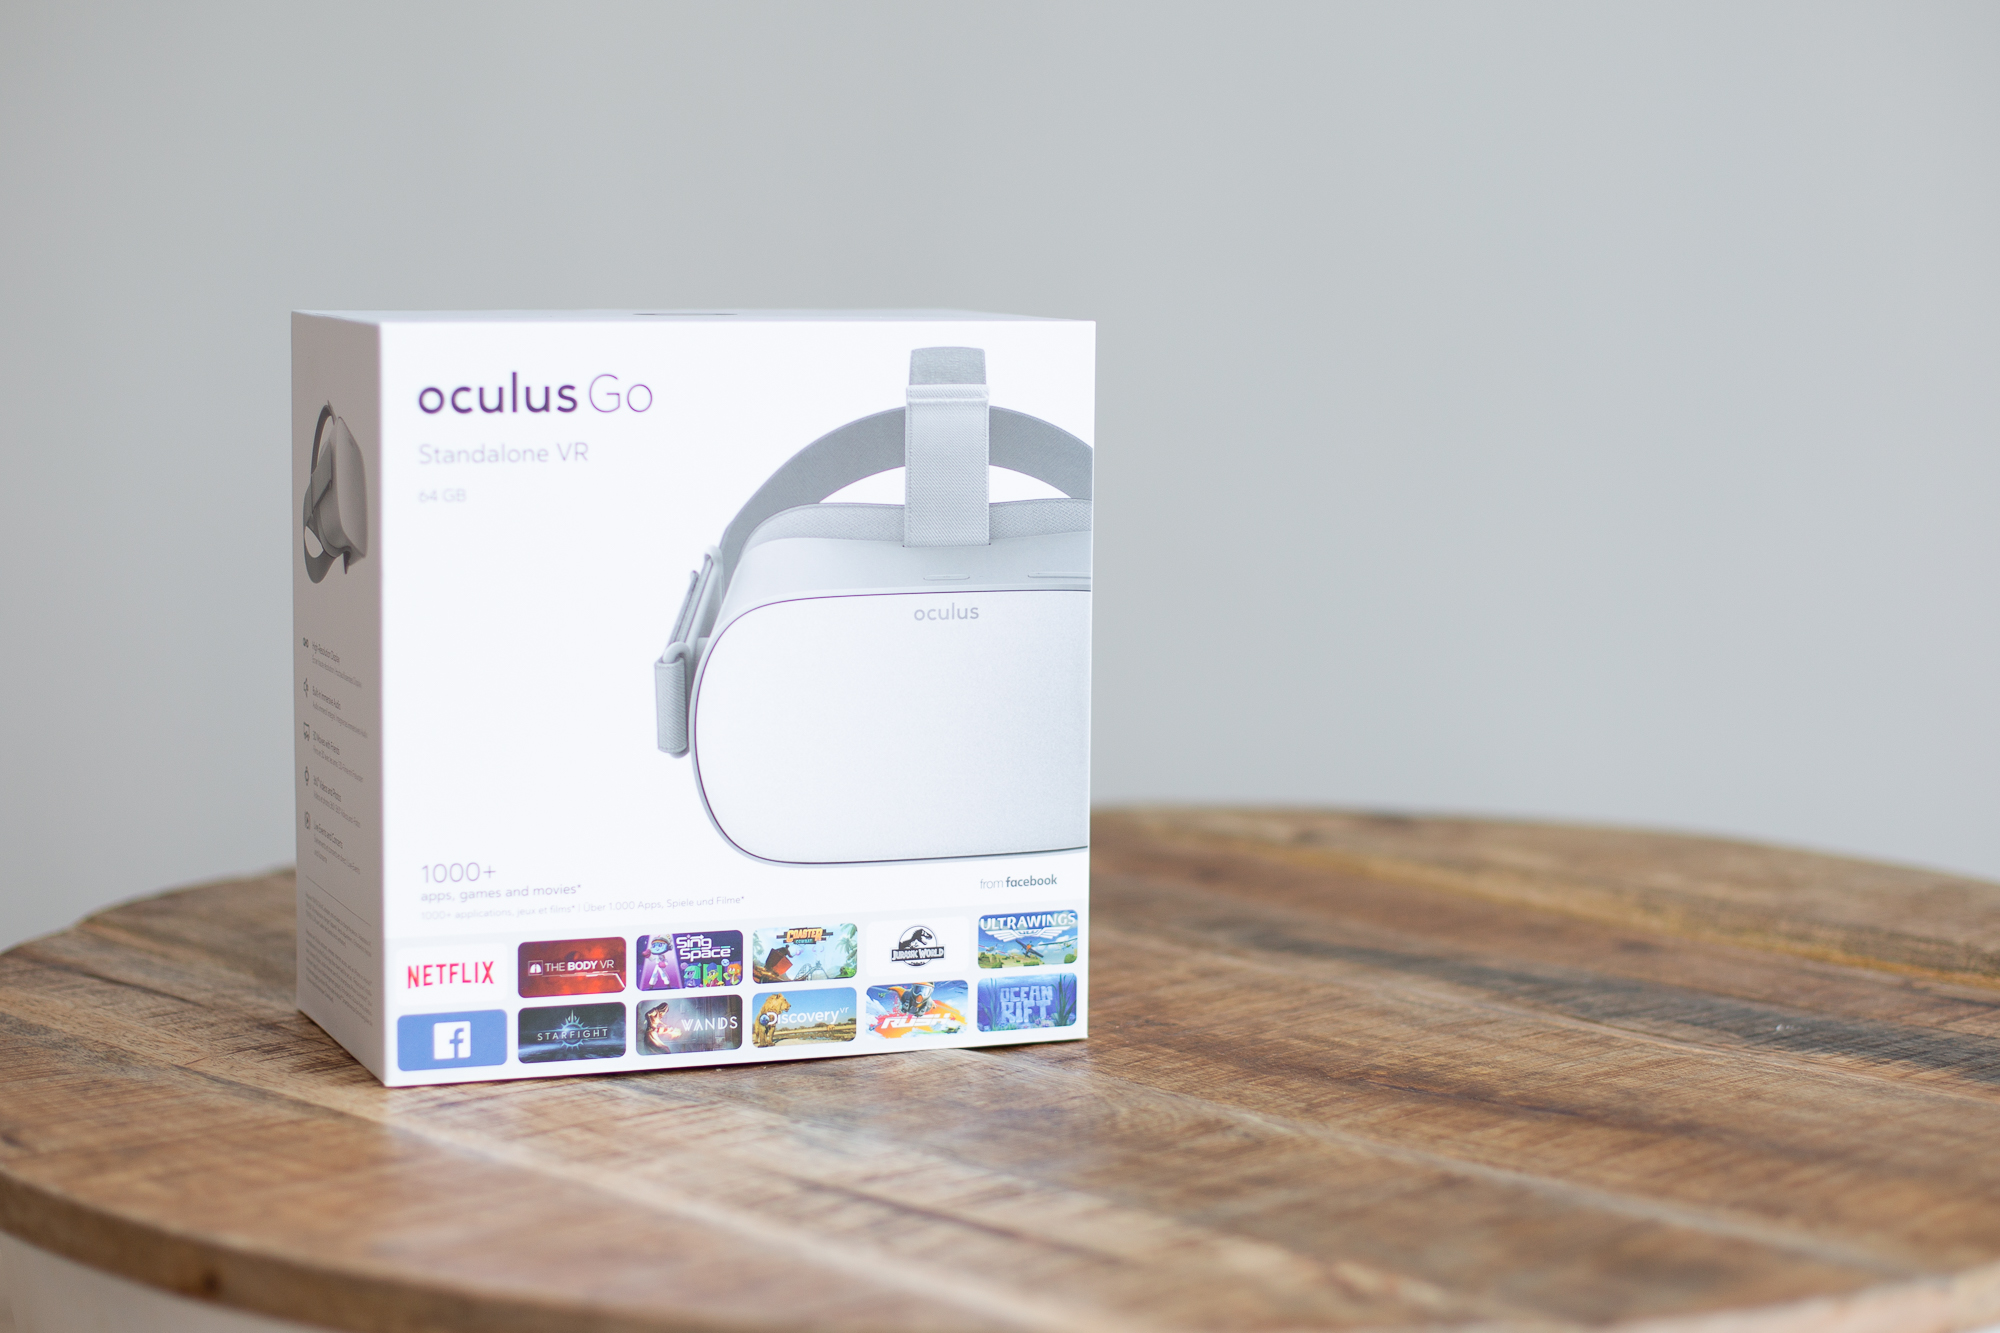 Oculus Go packaging